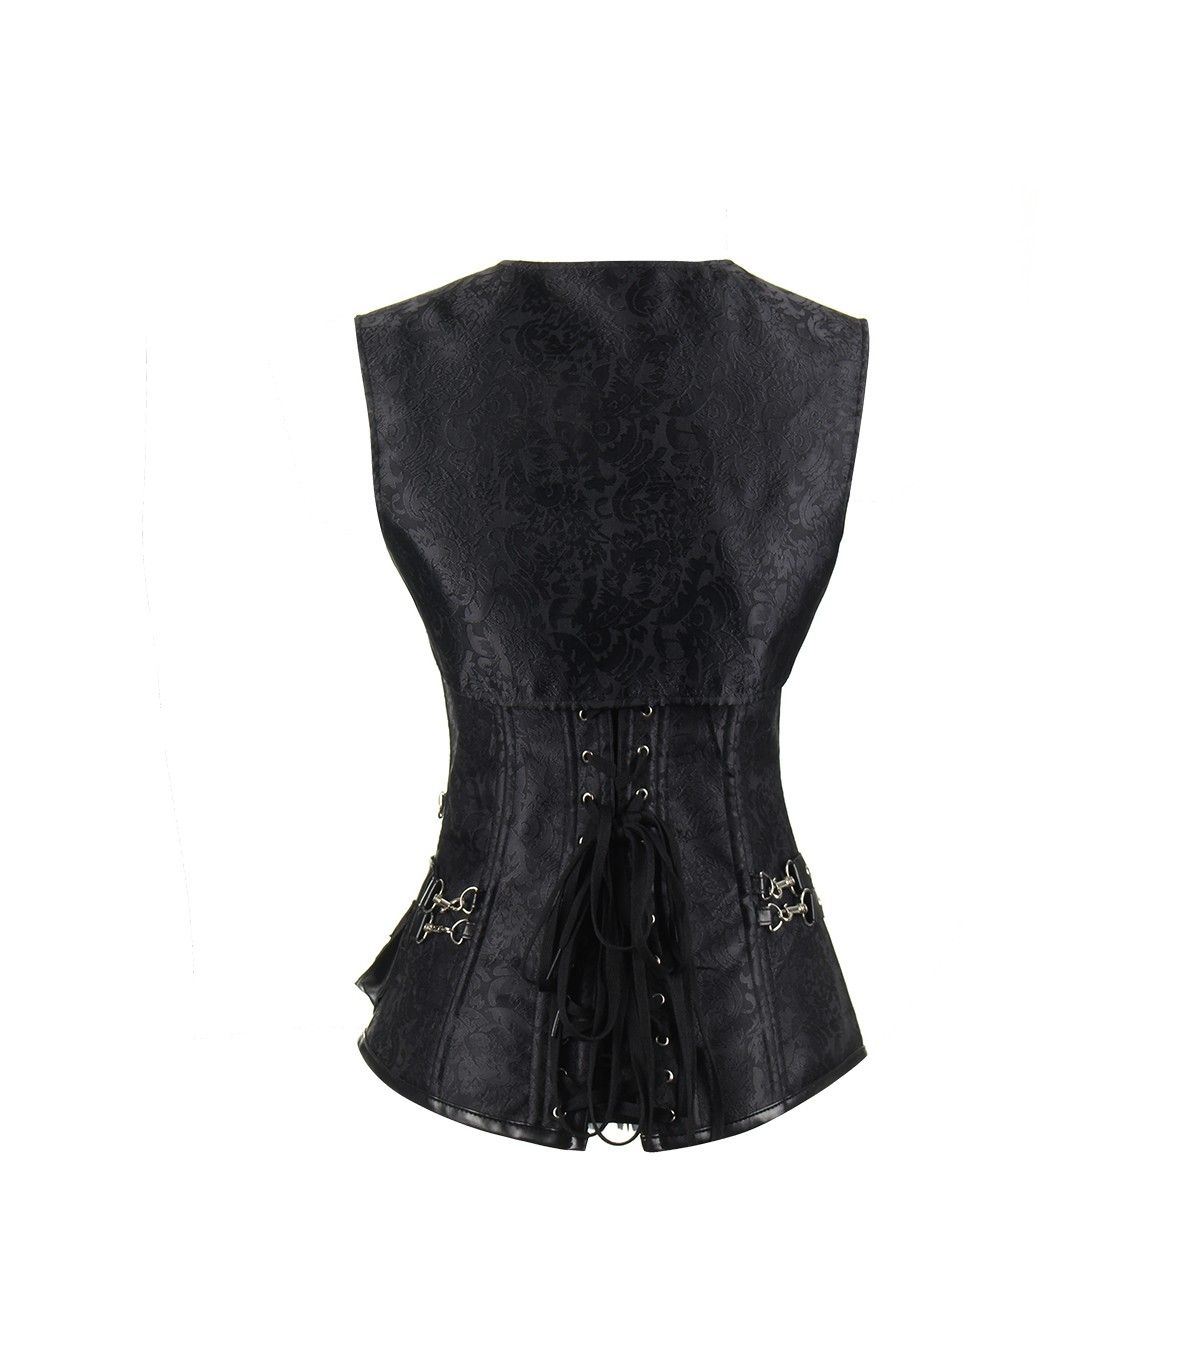 871092dad Jacquard Lace Up Back Gothic Overbust Steel Boned Corset